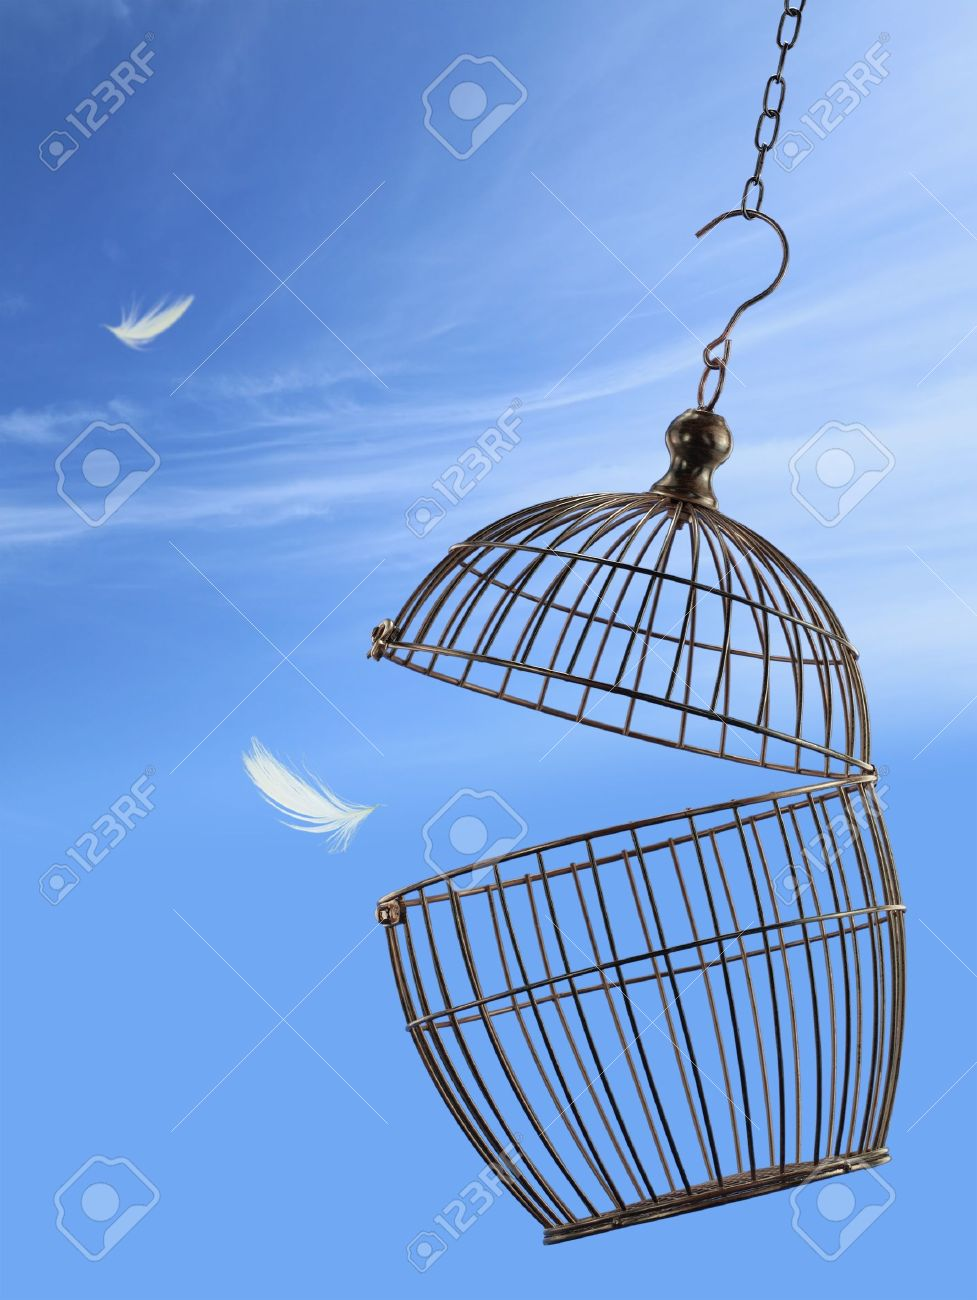 Freedom concept. Escaping from the cage Stock Photo - 13733515